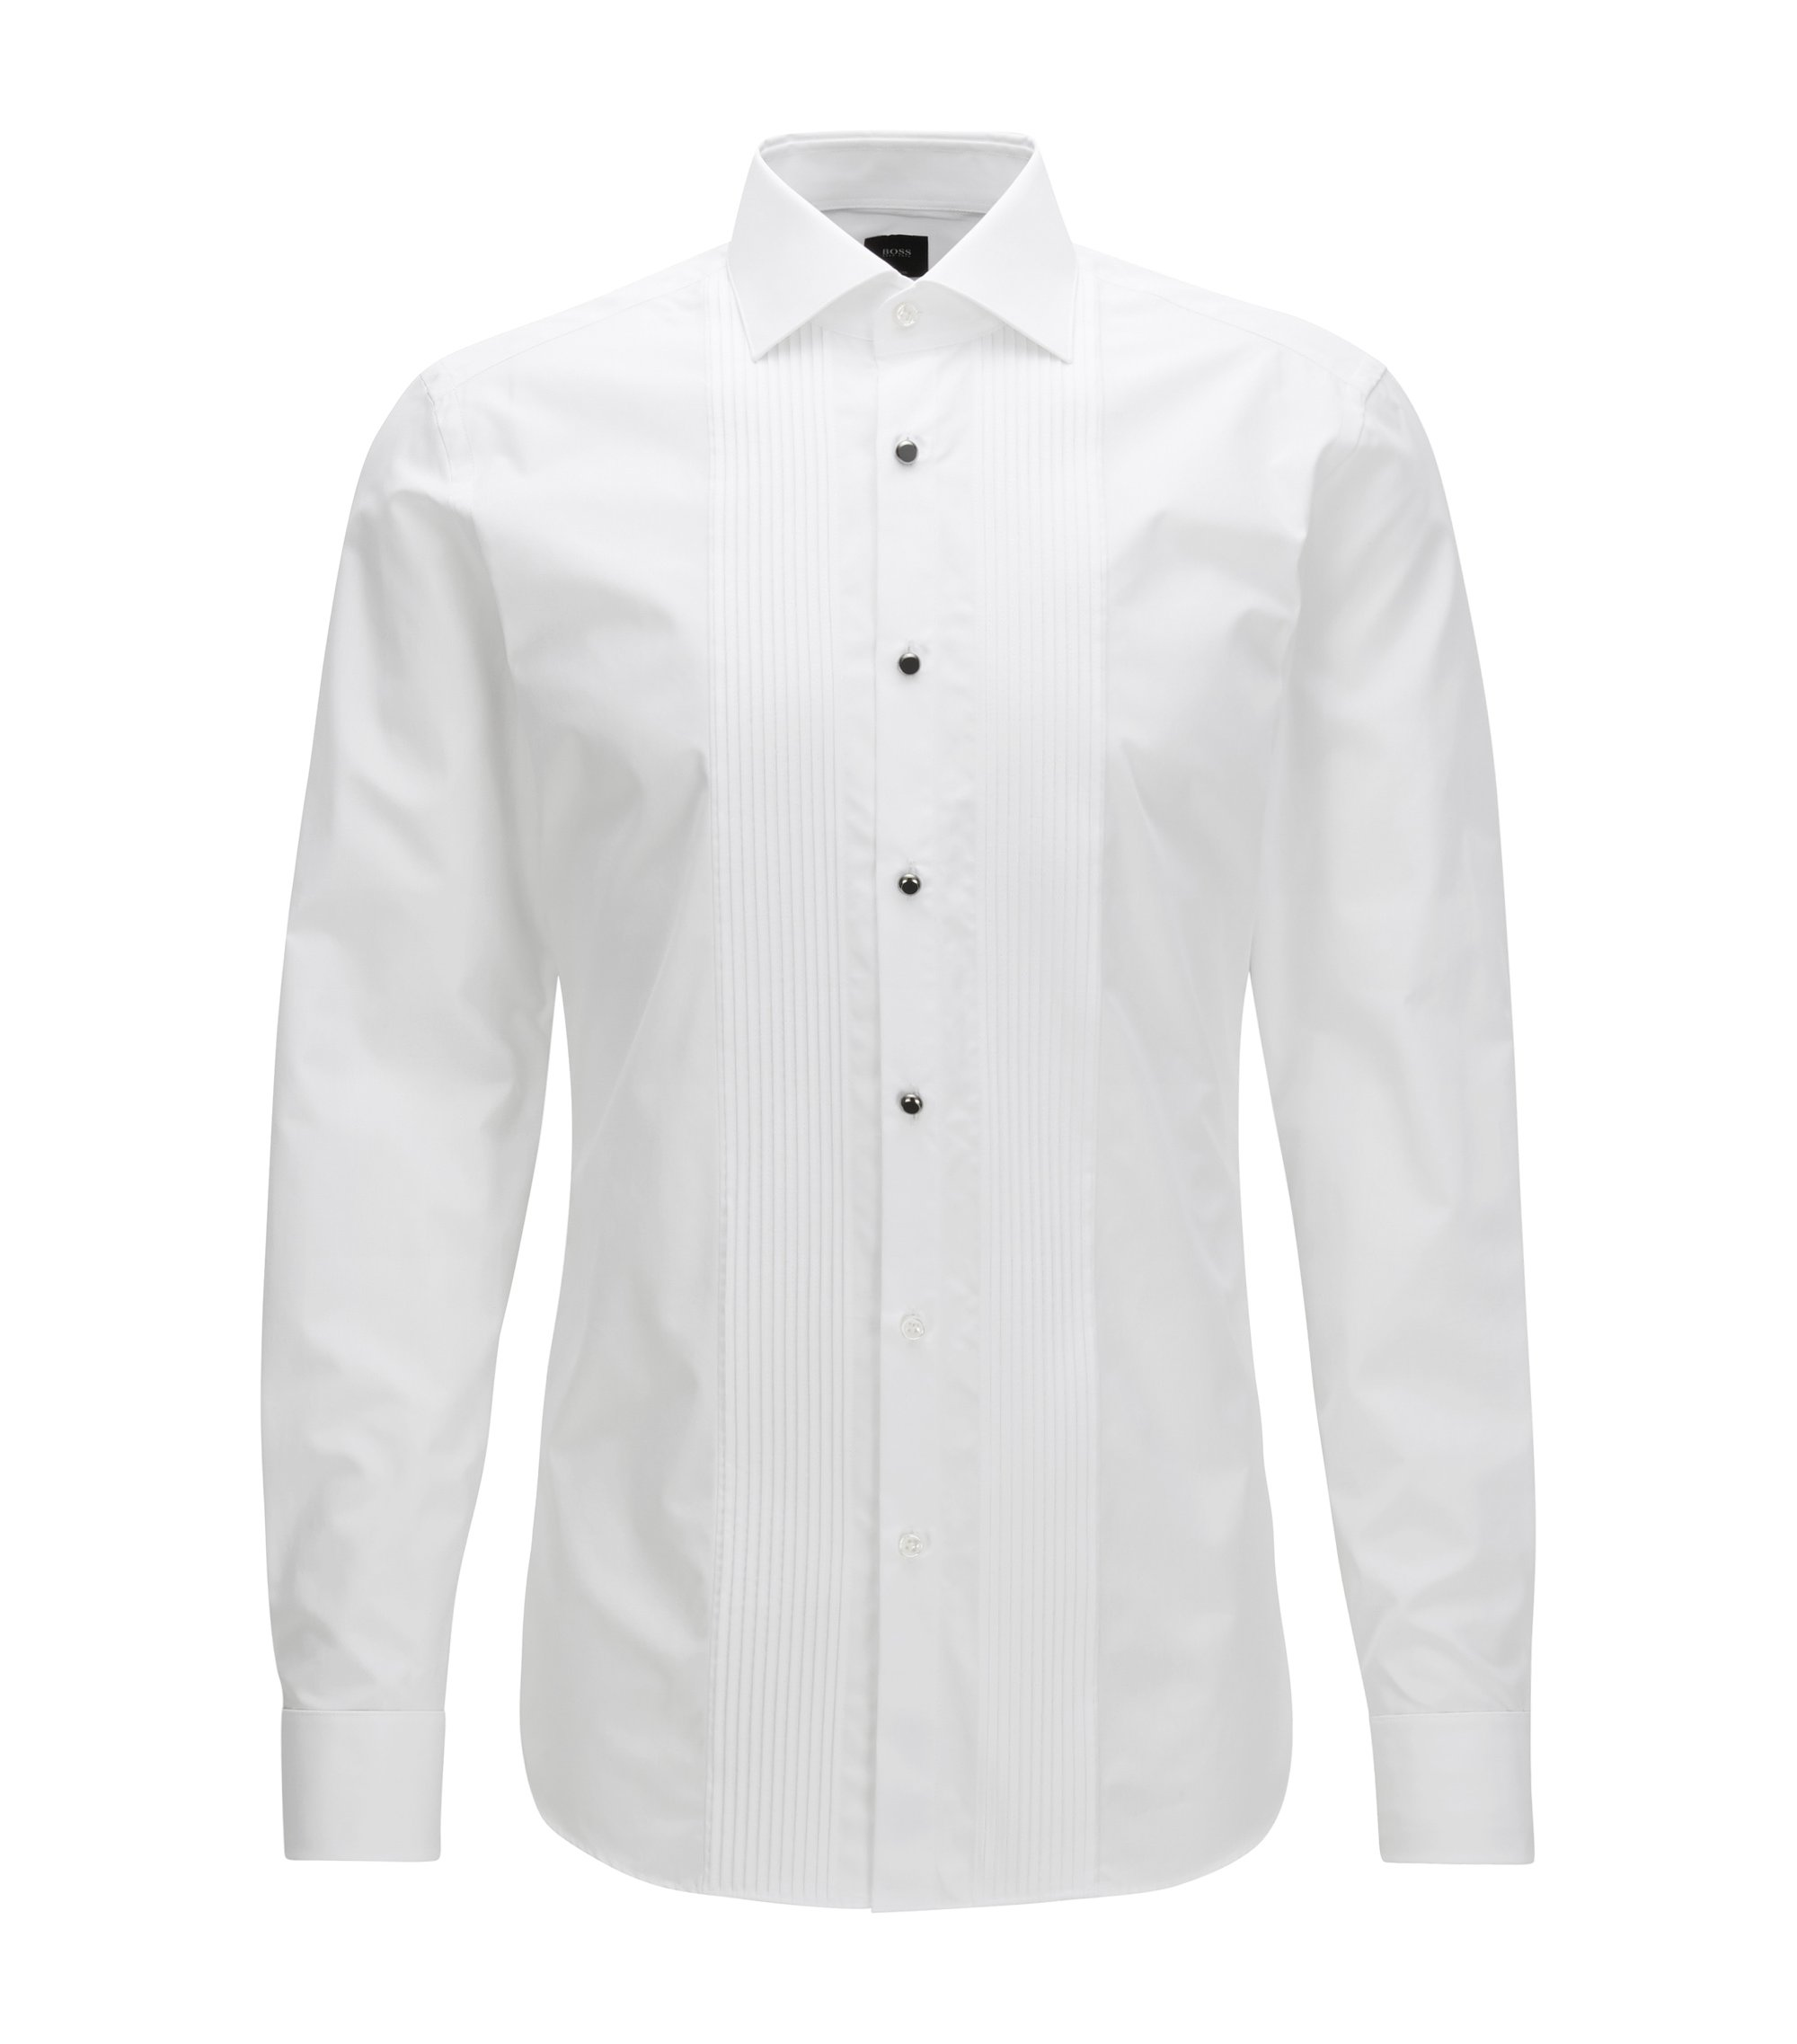 Slim-fit evening shirt in Italian cotton poplin, Weiß